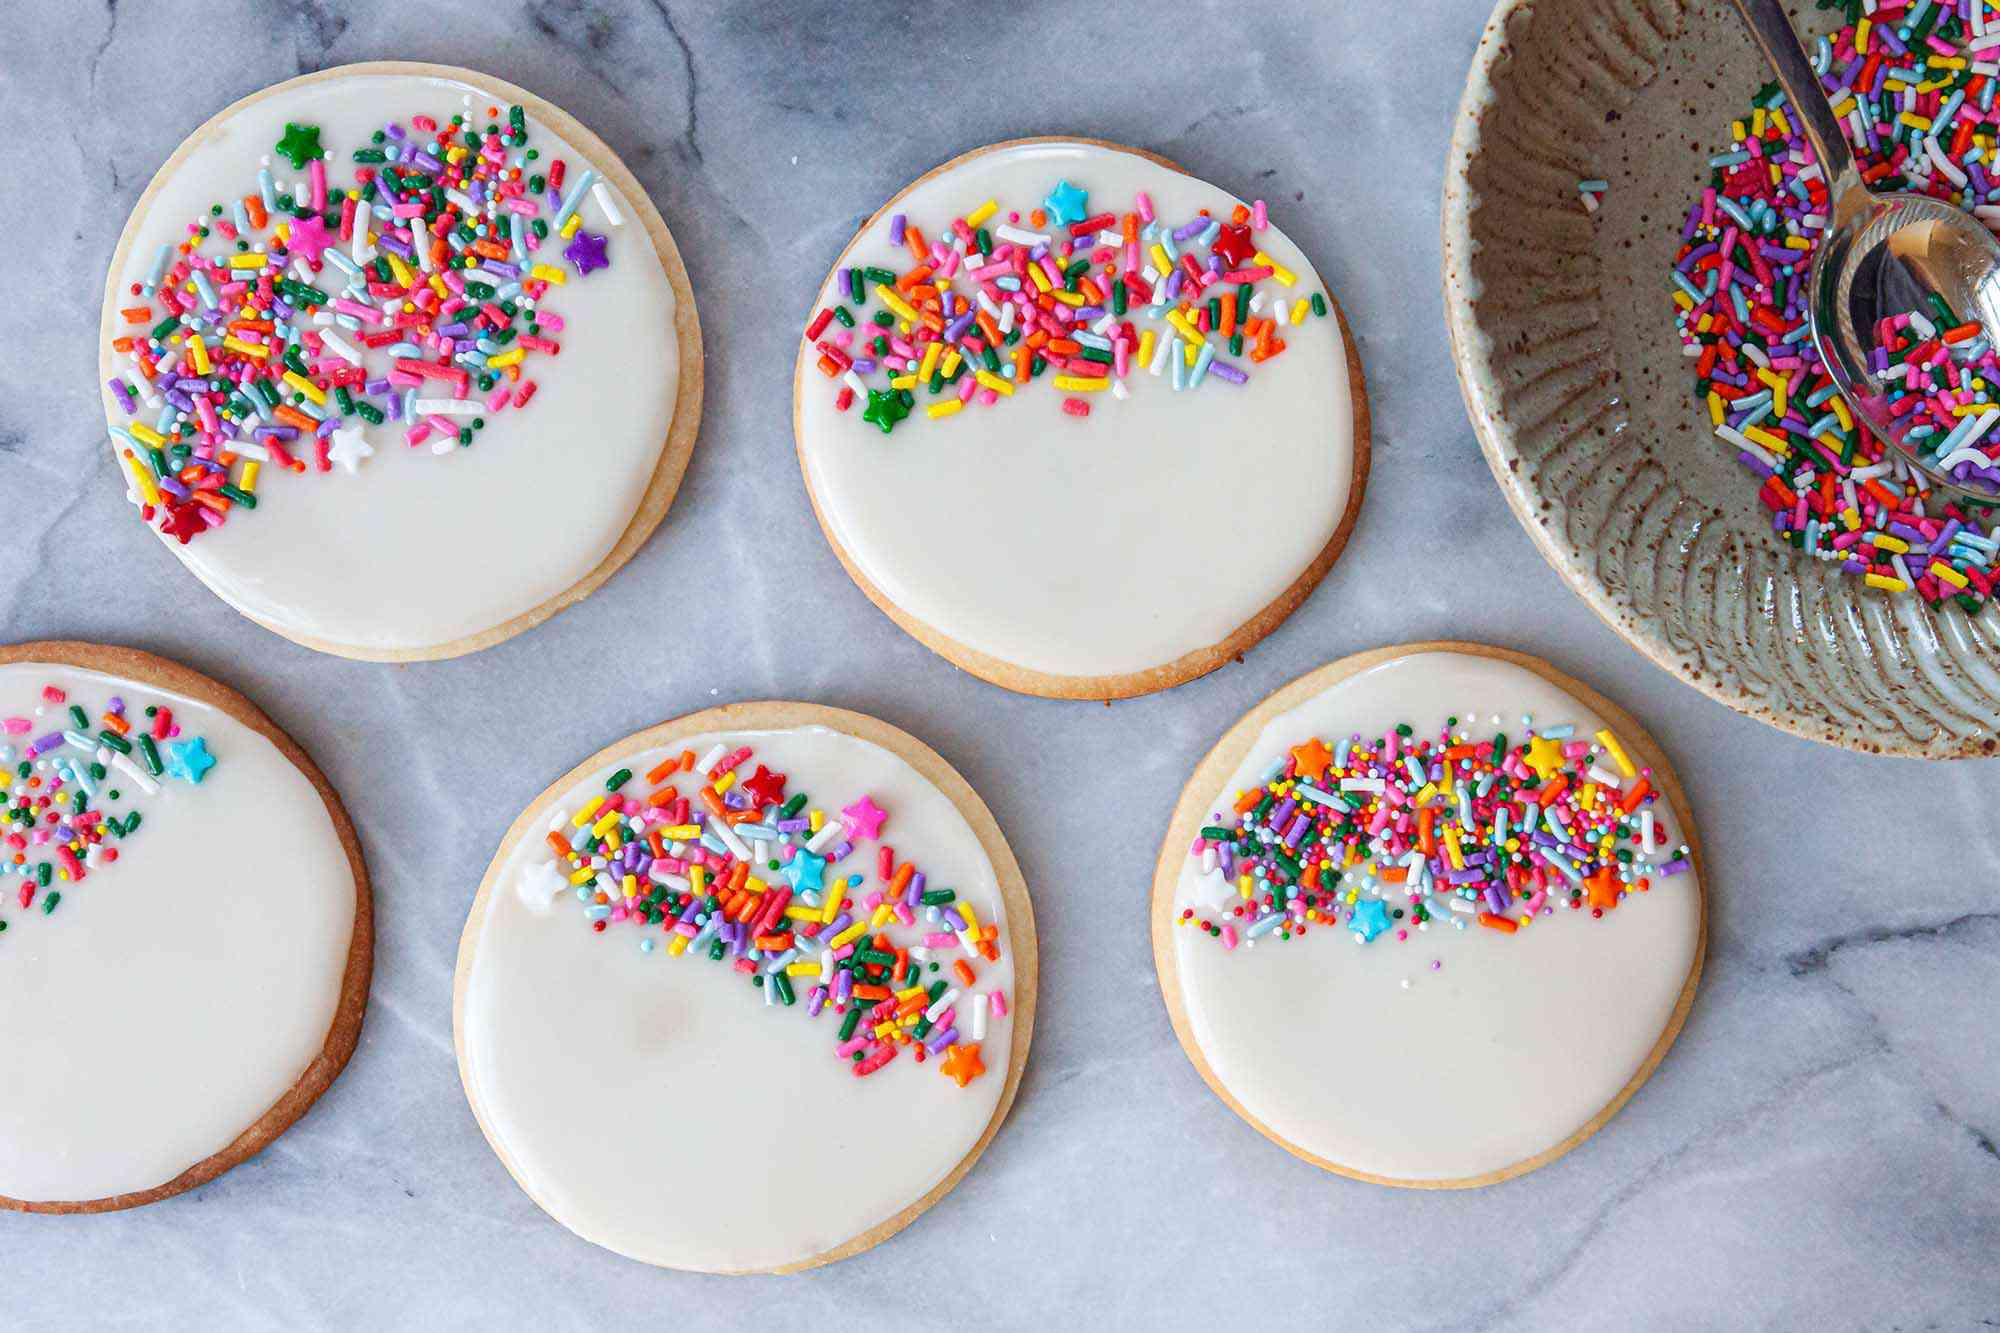 Round sugar cookies decorated with Royal icing for sugar cookies and rainbow sprinkles.